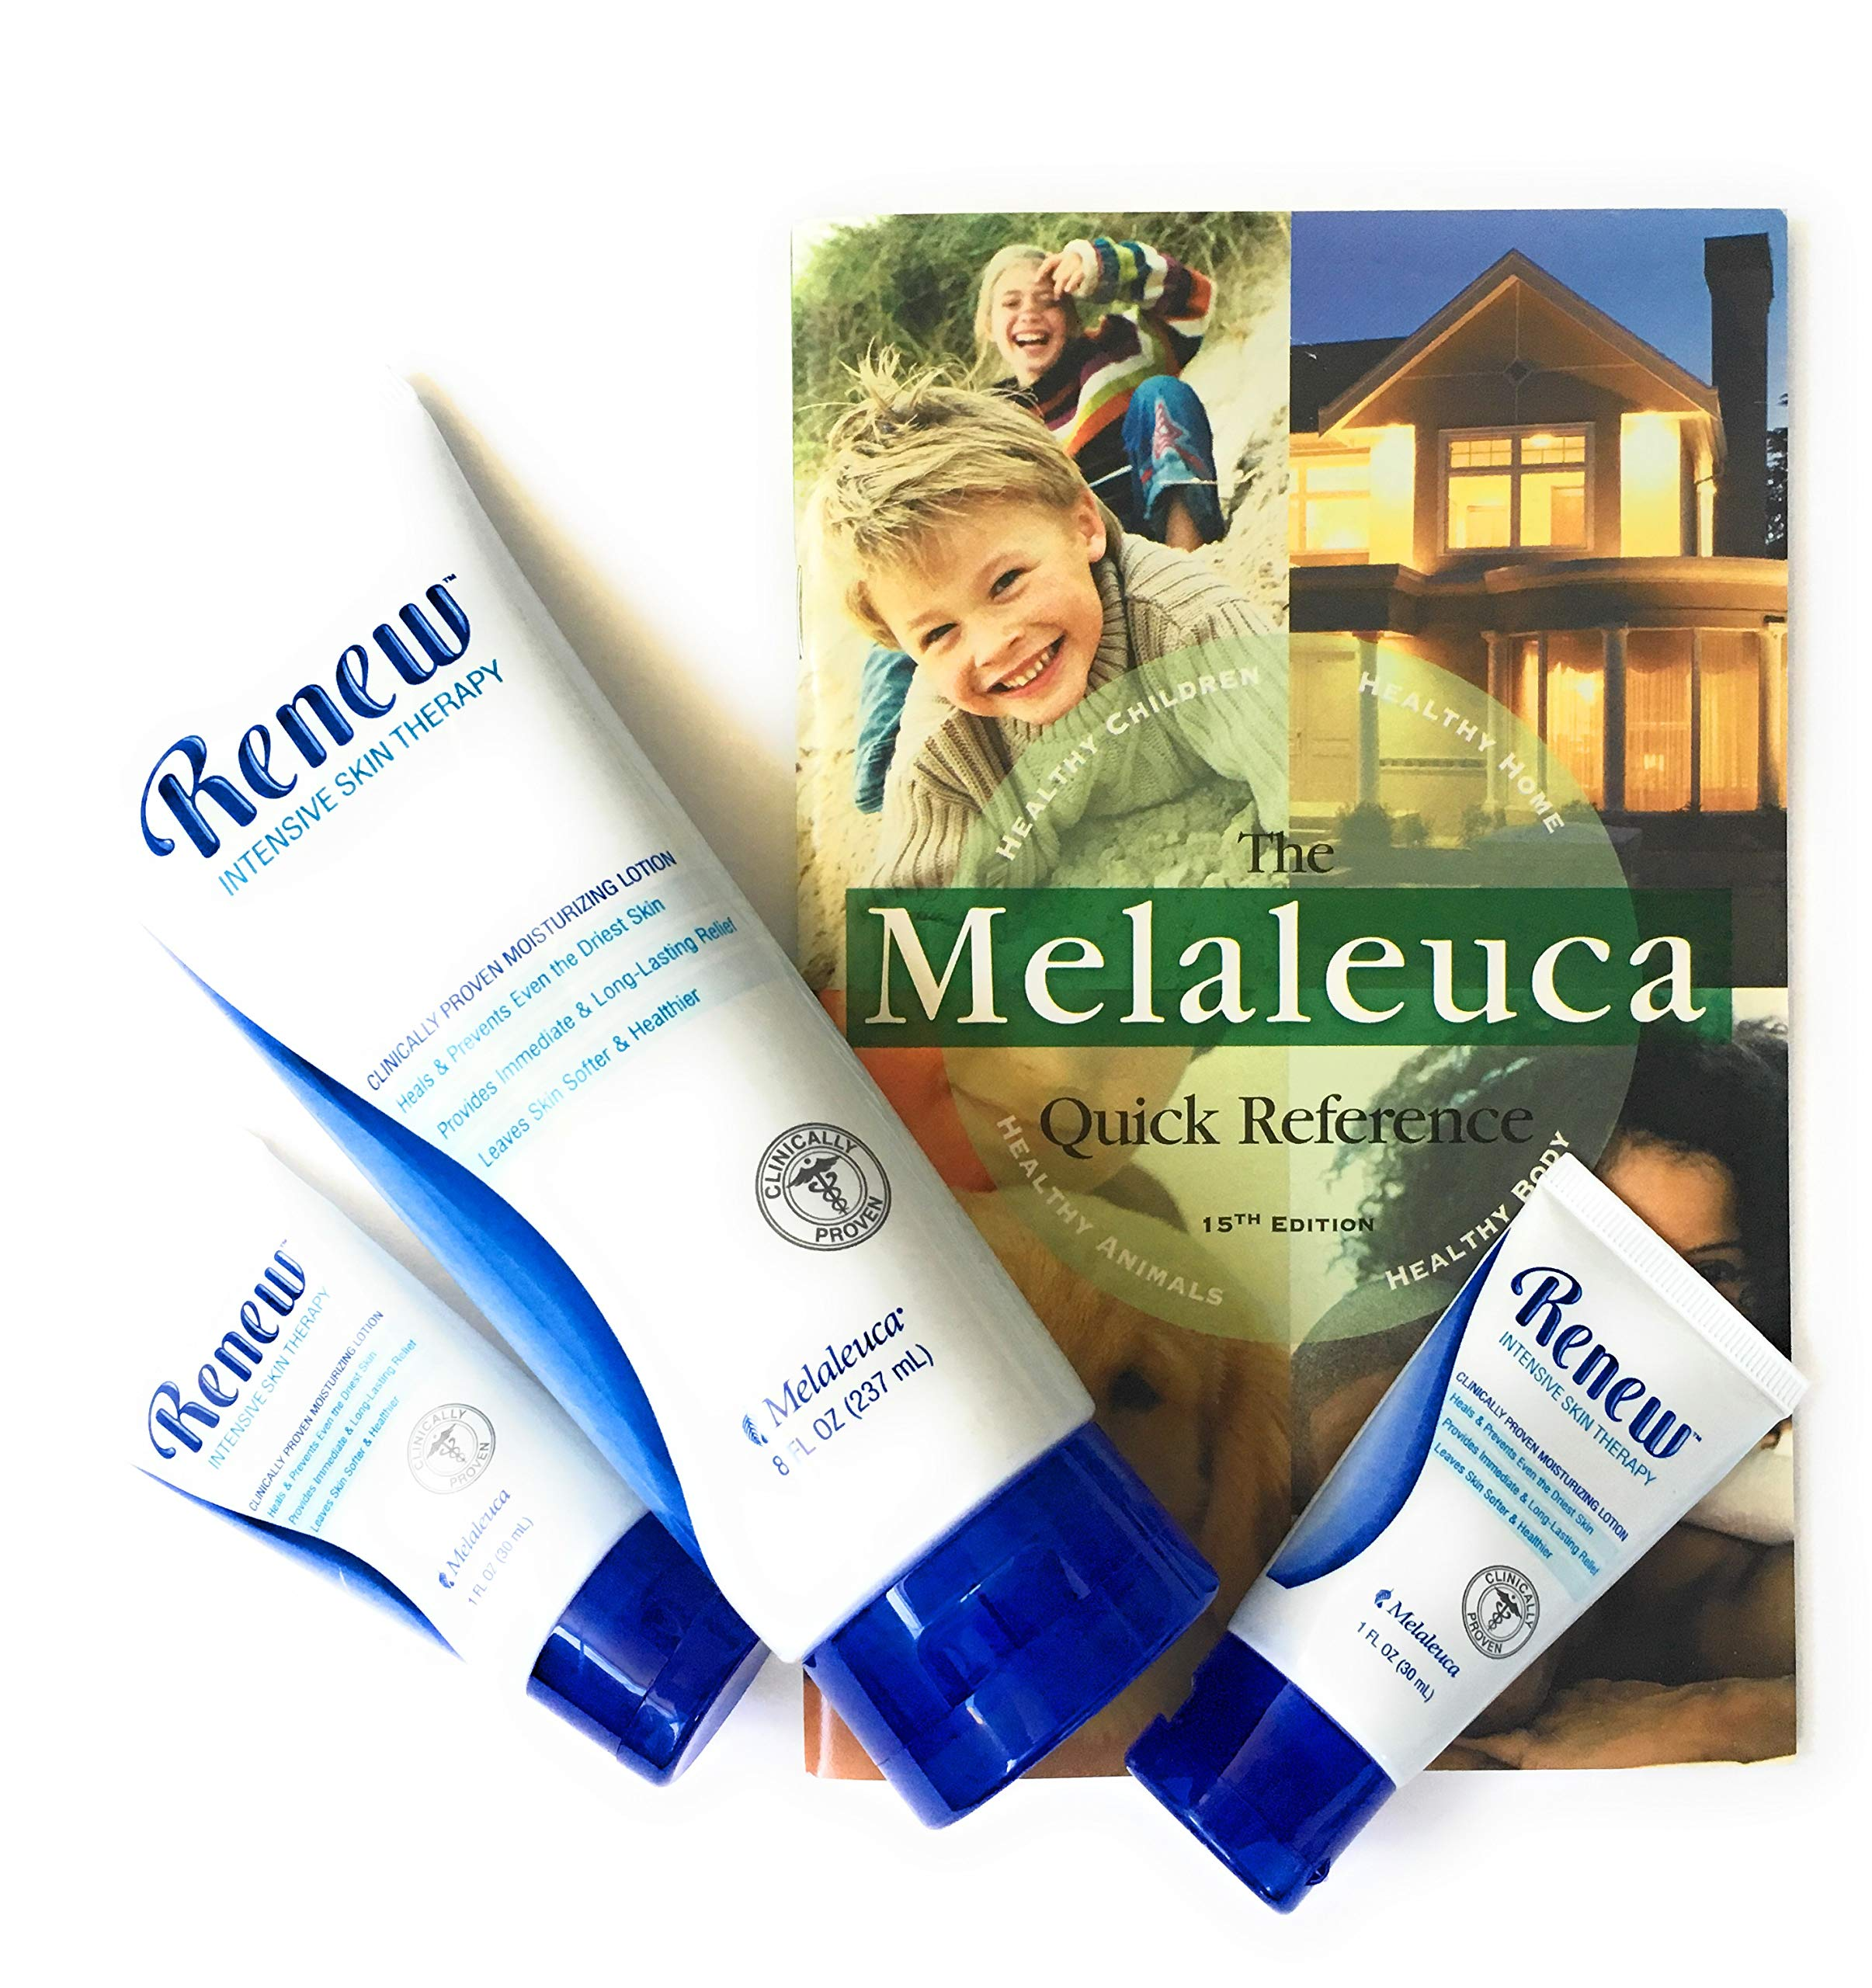 Melaleuca Renew Intensive Skin Therapy Moisturizing Lotion Tube (8 oz) with 2 Travel Size Tubes (1 oz) plus Quick Reference Guide by